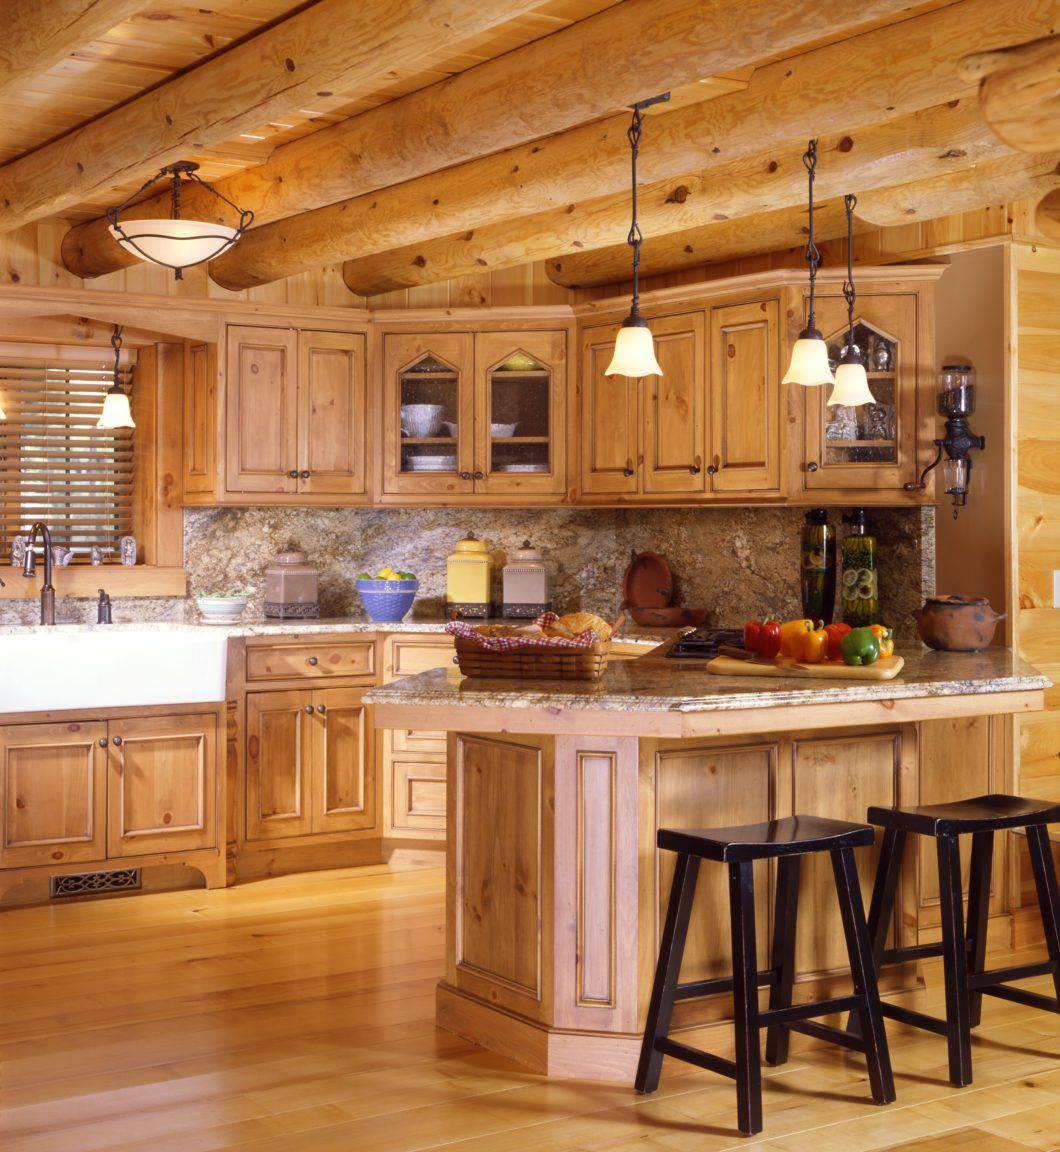 7 Cottage Kitchen Style A Small Paradise In Your Home Log Home Kitchens Log Home Kitchen Log Cabin Kitchens